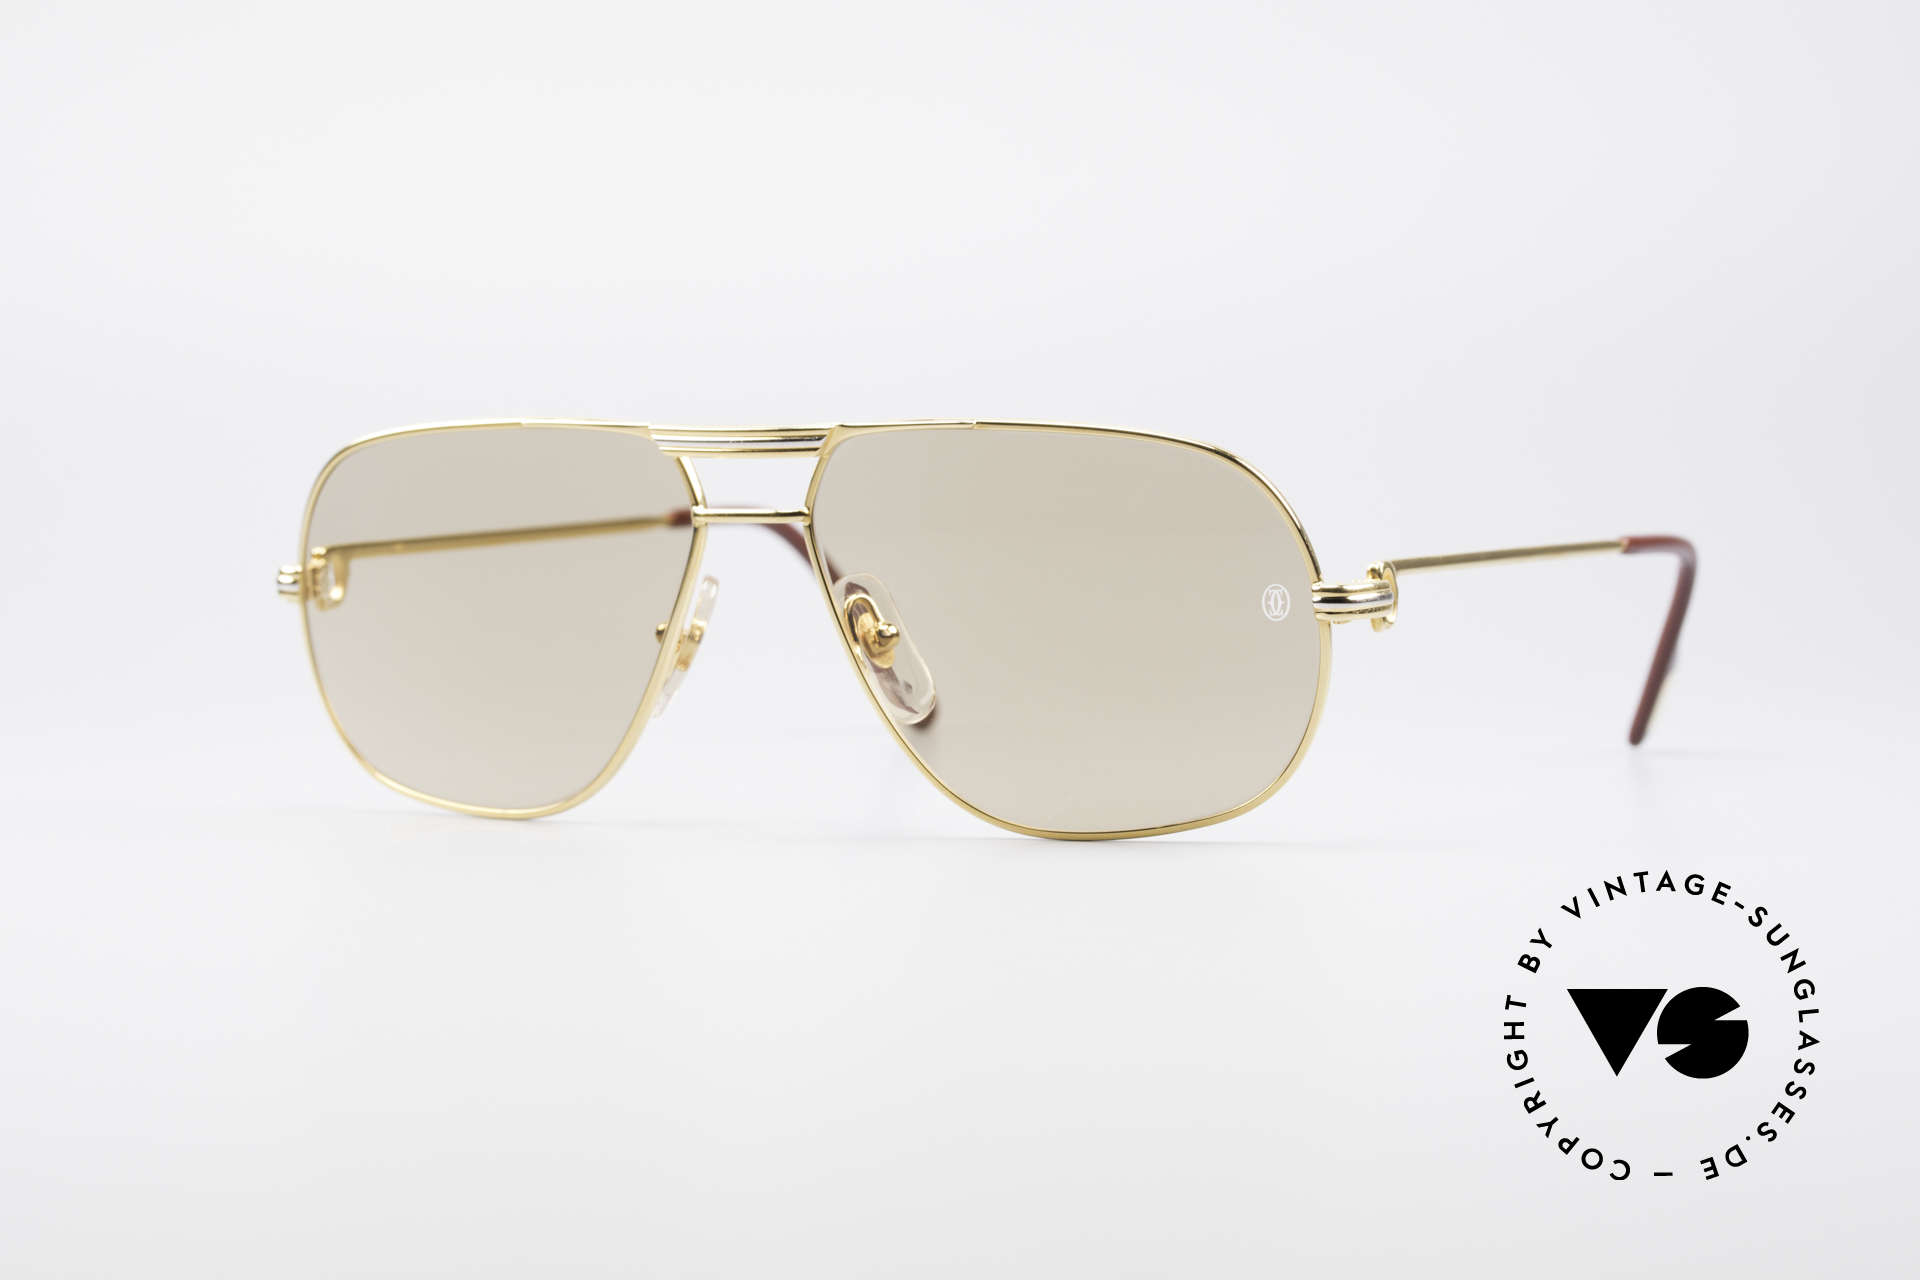 Cartier Tank - M Luxury Designer Sunglasses, orig. Cartier shades from 1988; MEDIUM size 59°14, 140, Made for Men